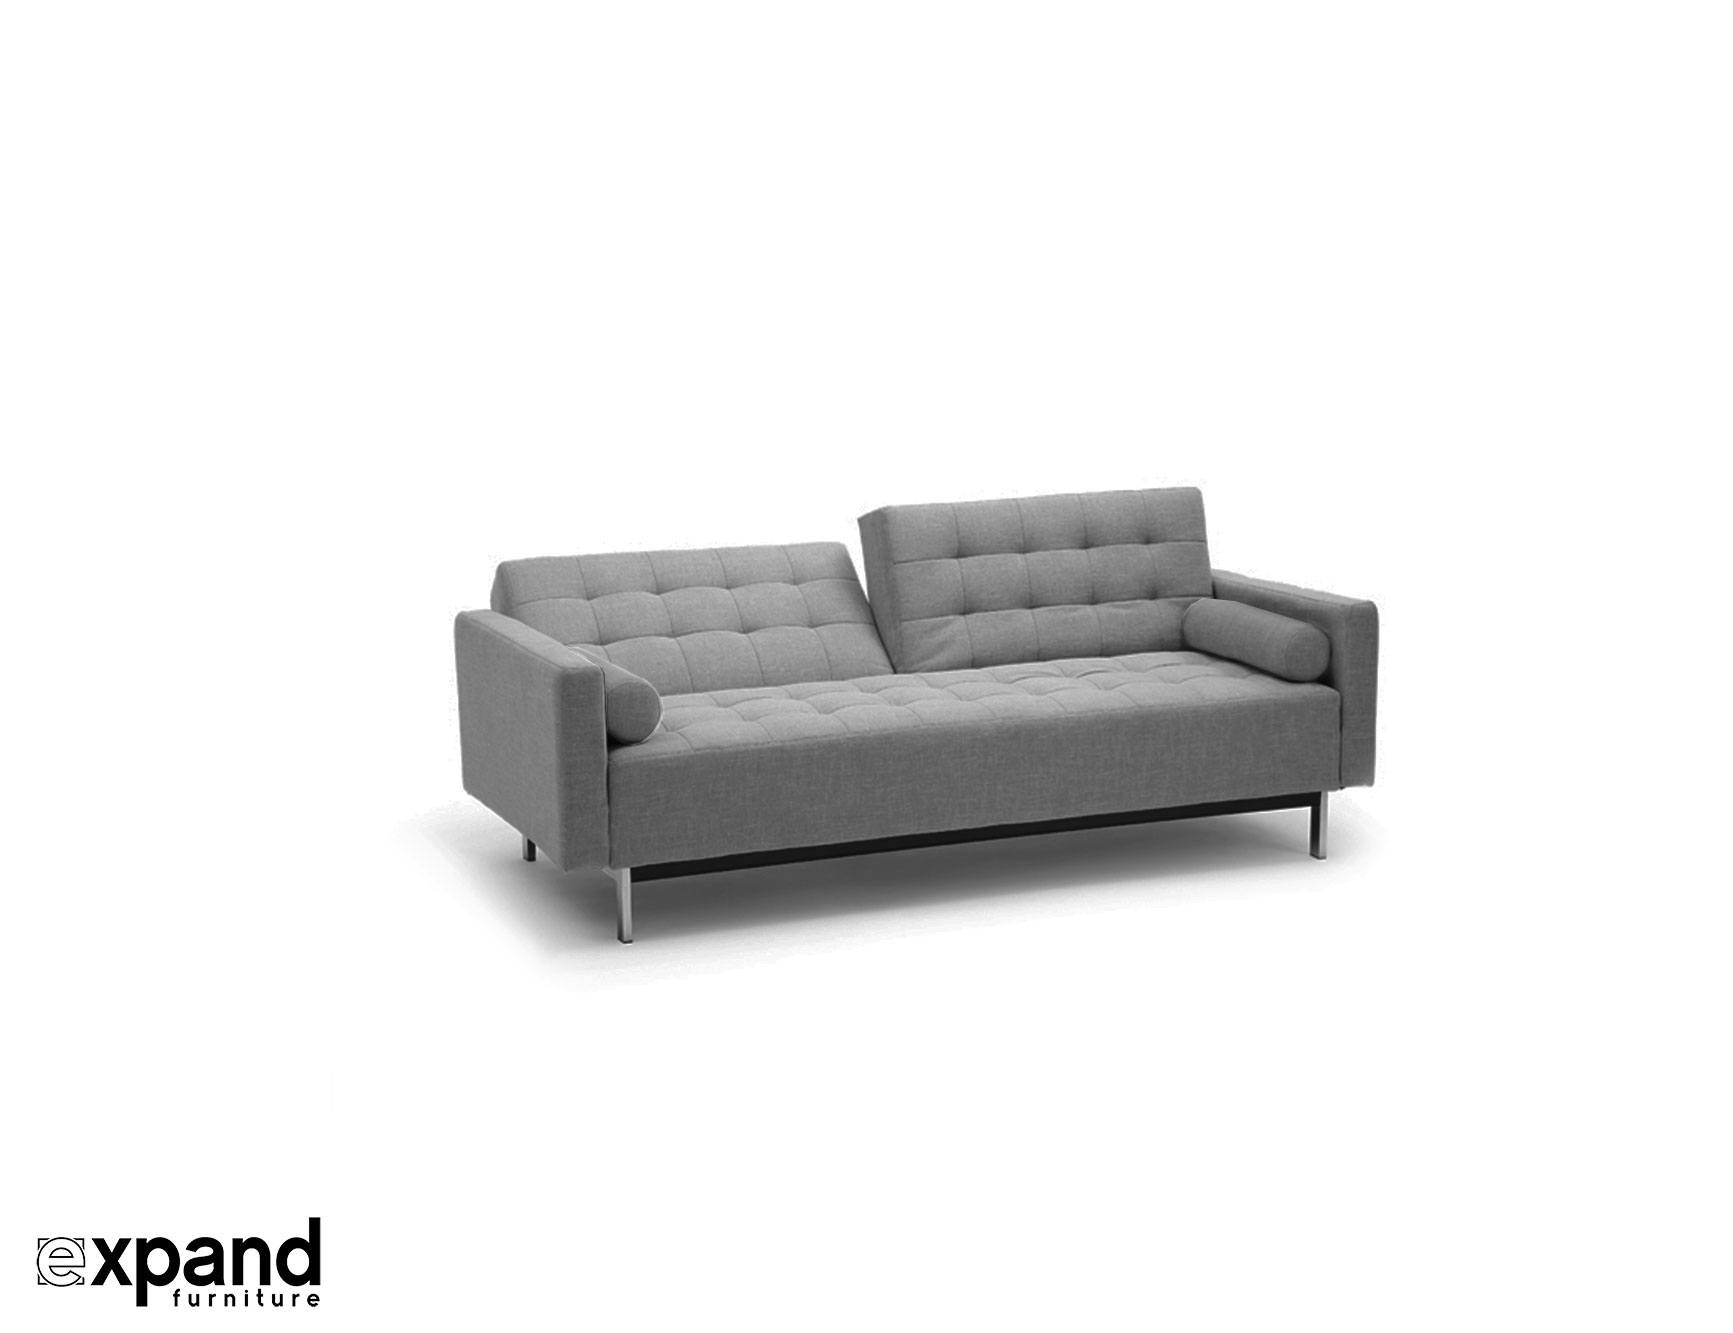 The Tilt Sofa bed with Tufted upholstery